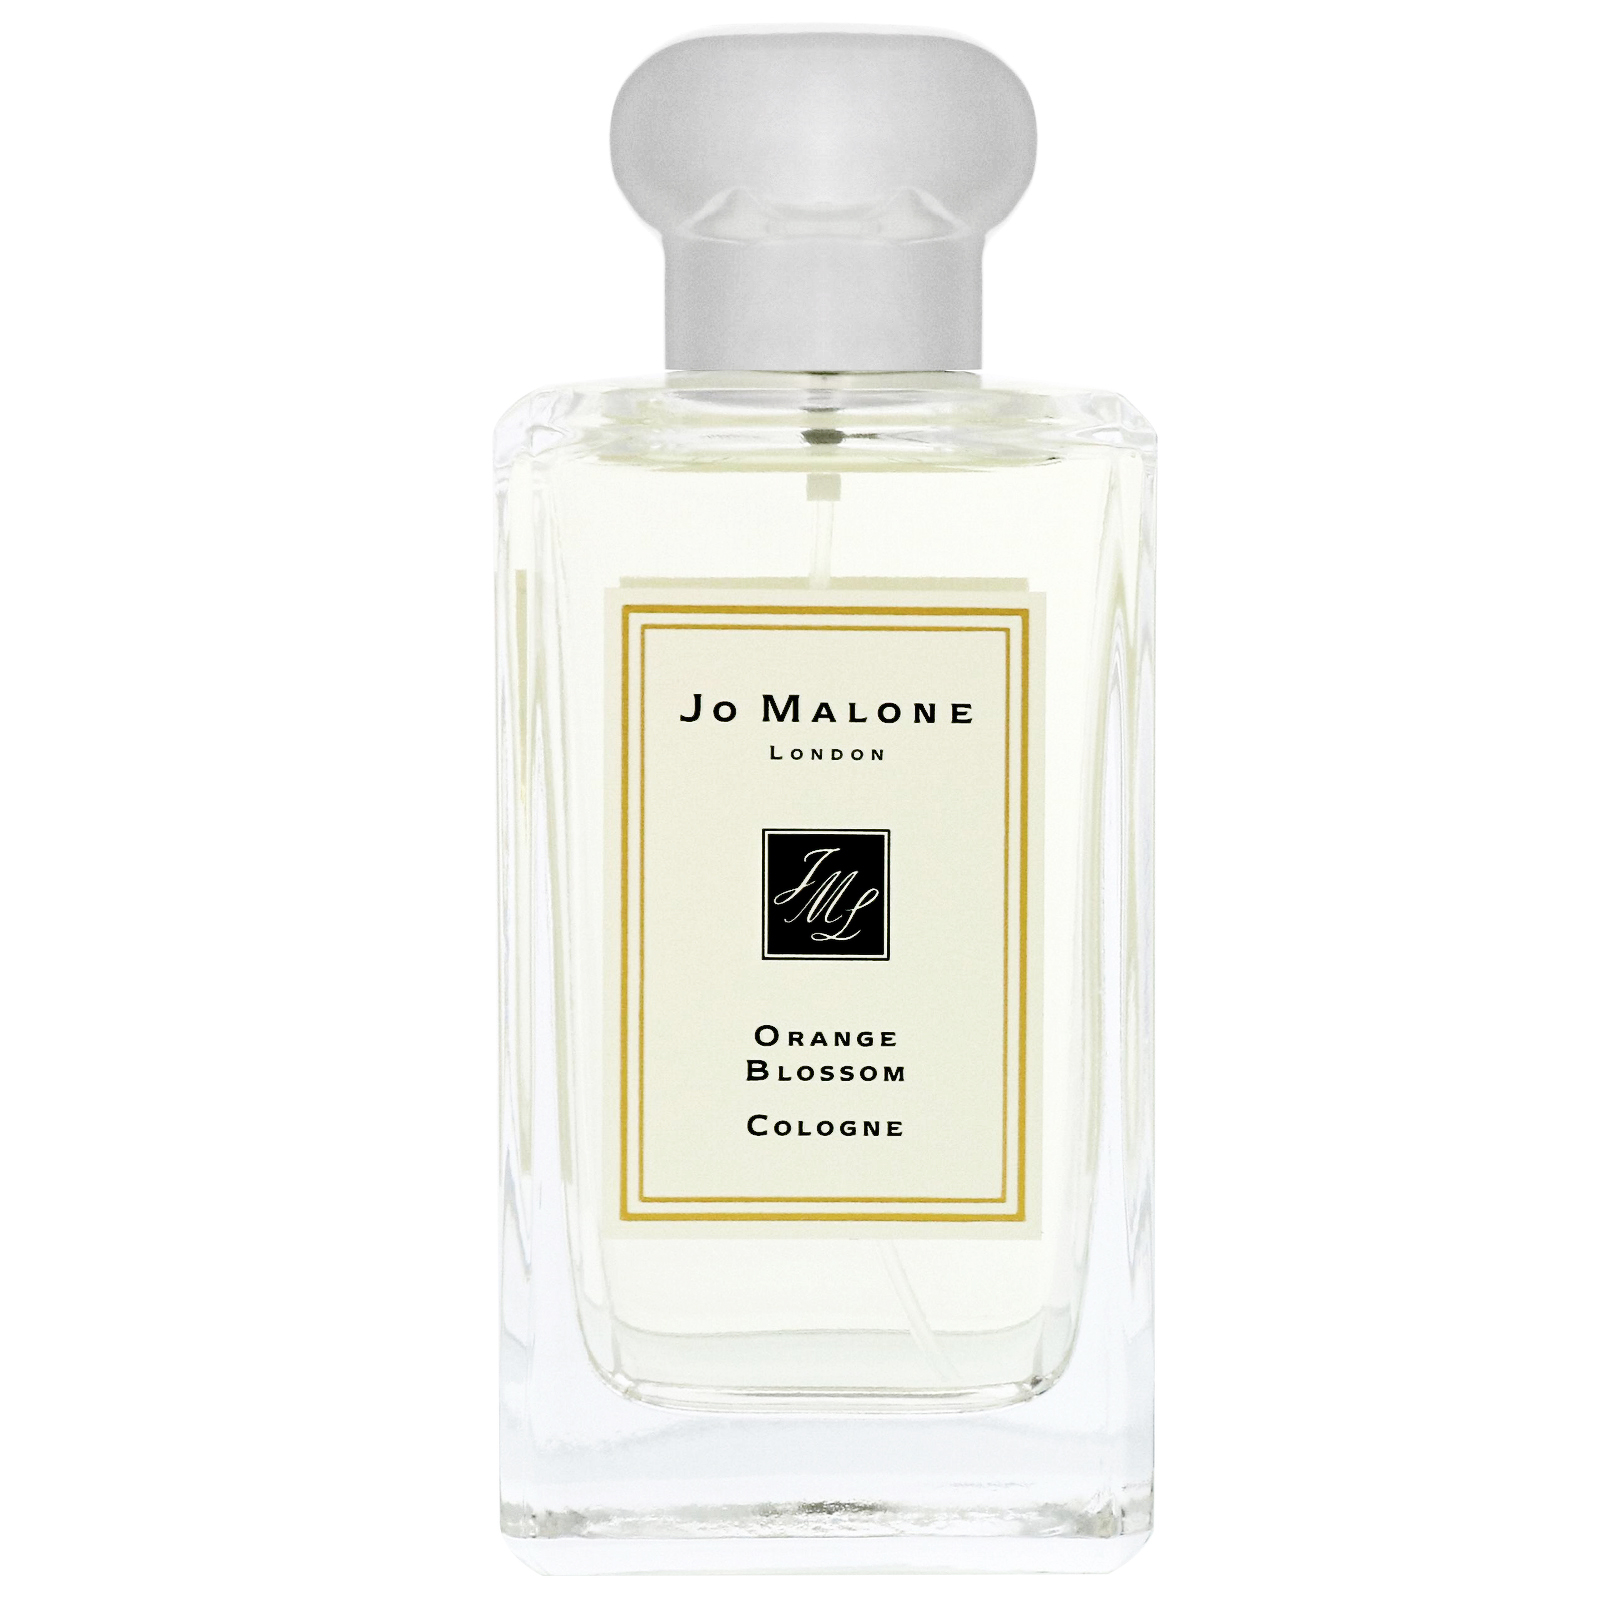 Jo Malone Orange Blossom Eau de Cologne Spray 100ml